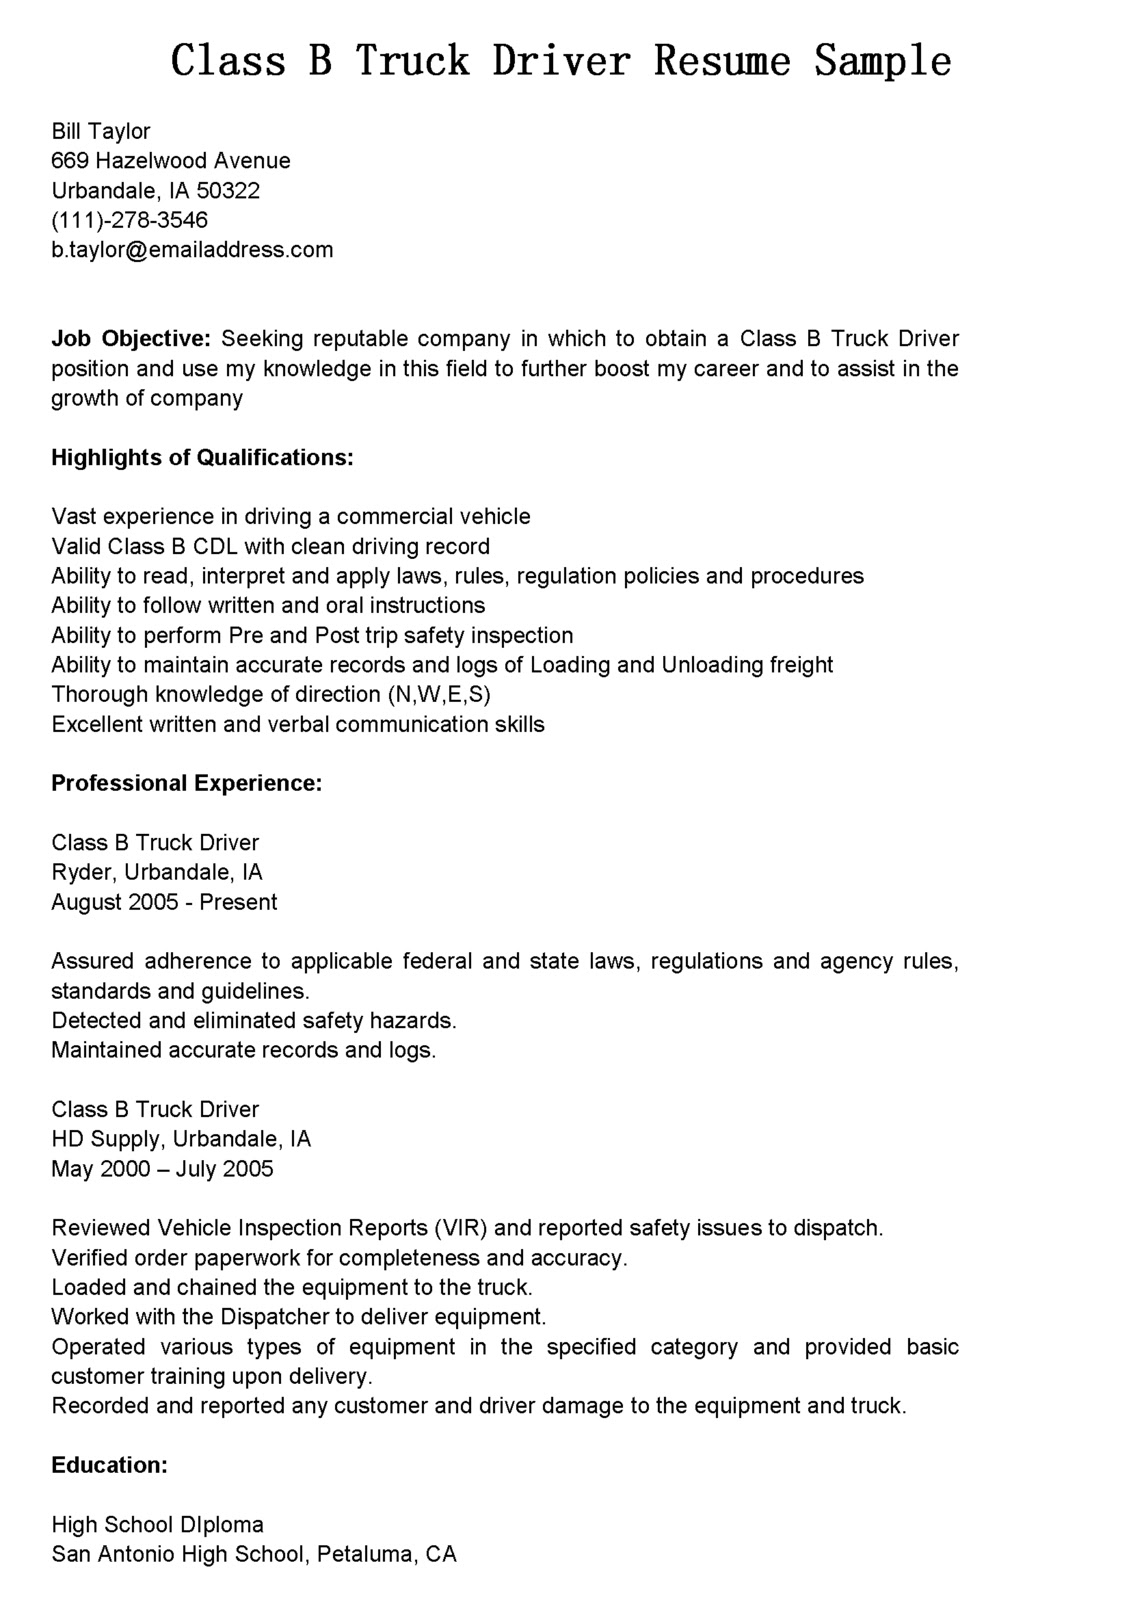 Driver Resumes Class B Truck Driver Resume Sample